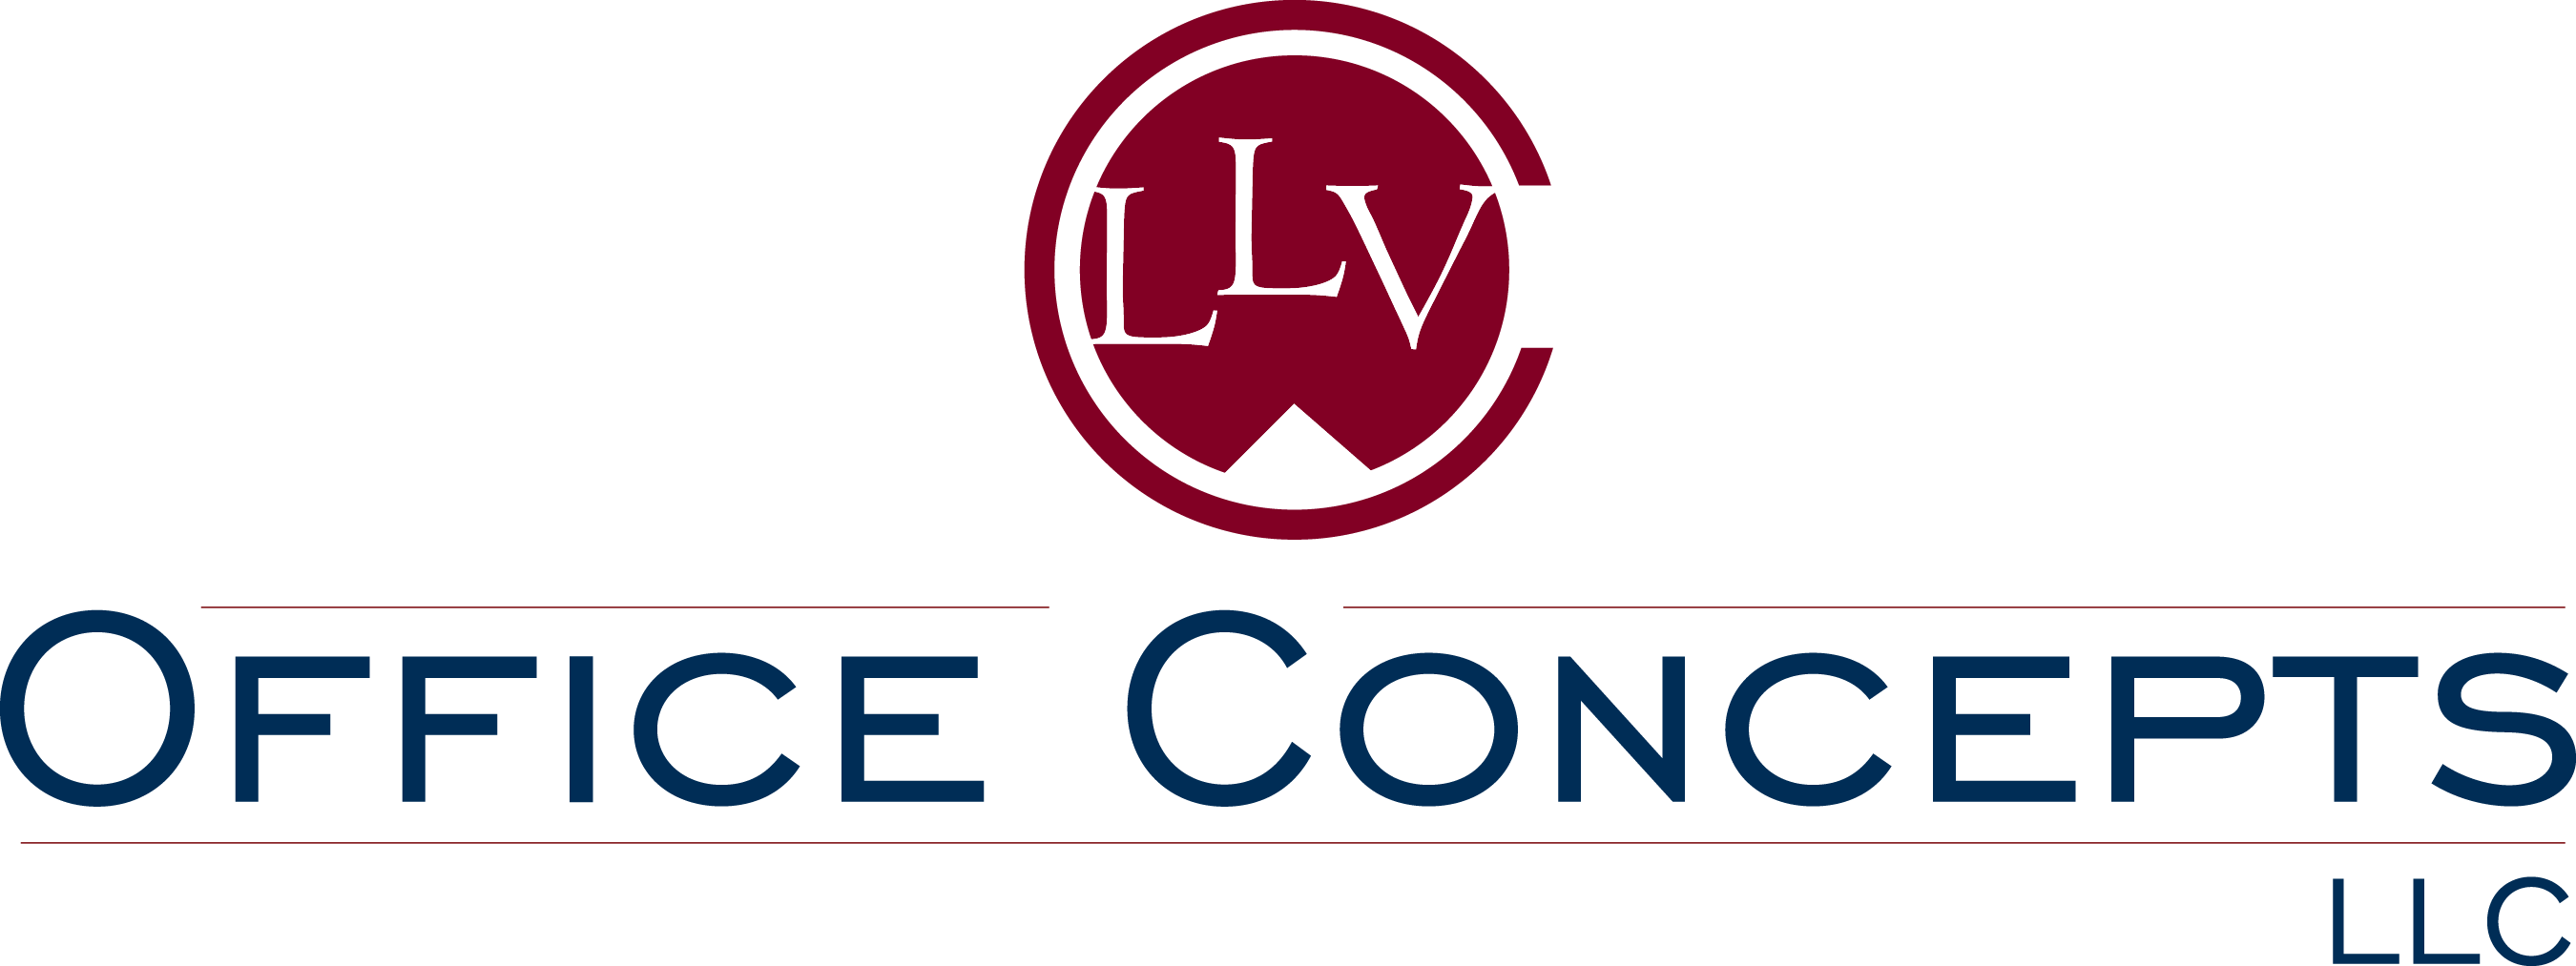 LLV Office Concepts, LLC